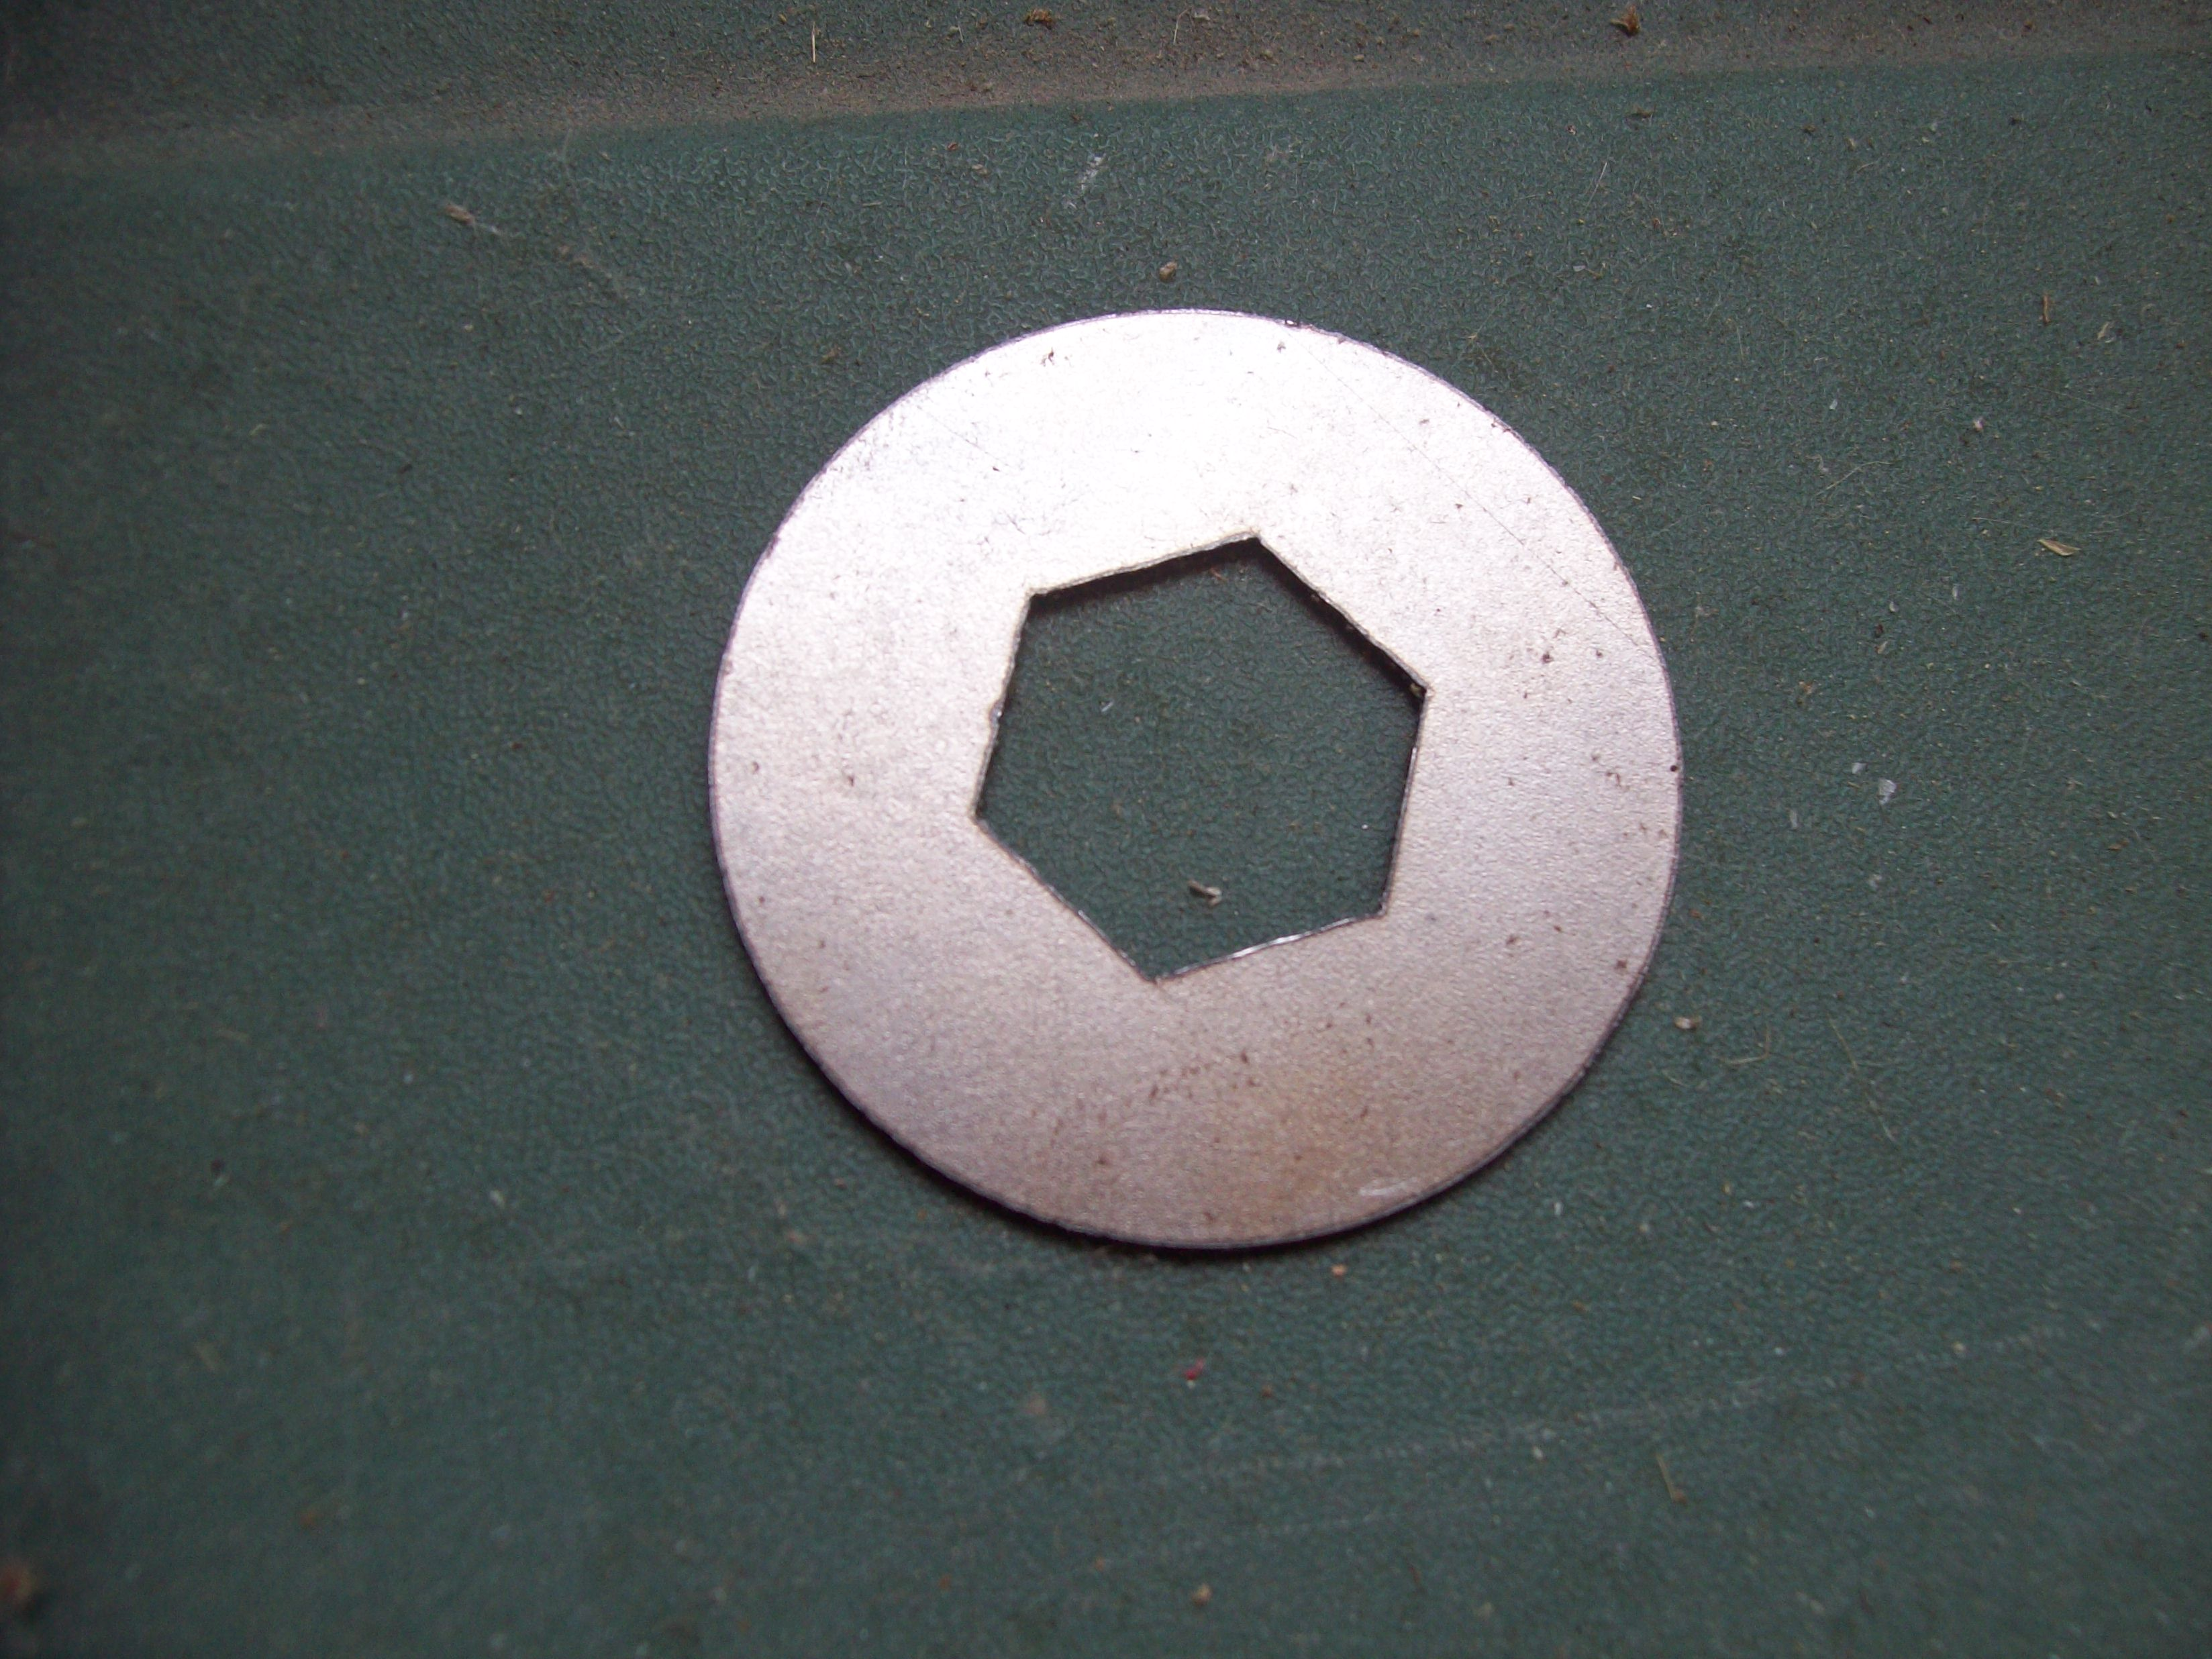 New Reproduction Clutch Nut Lock Tab Washer that fits the 1968-1982 Maico